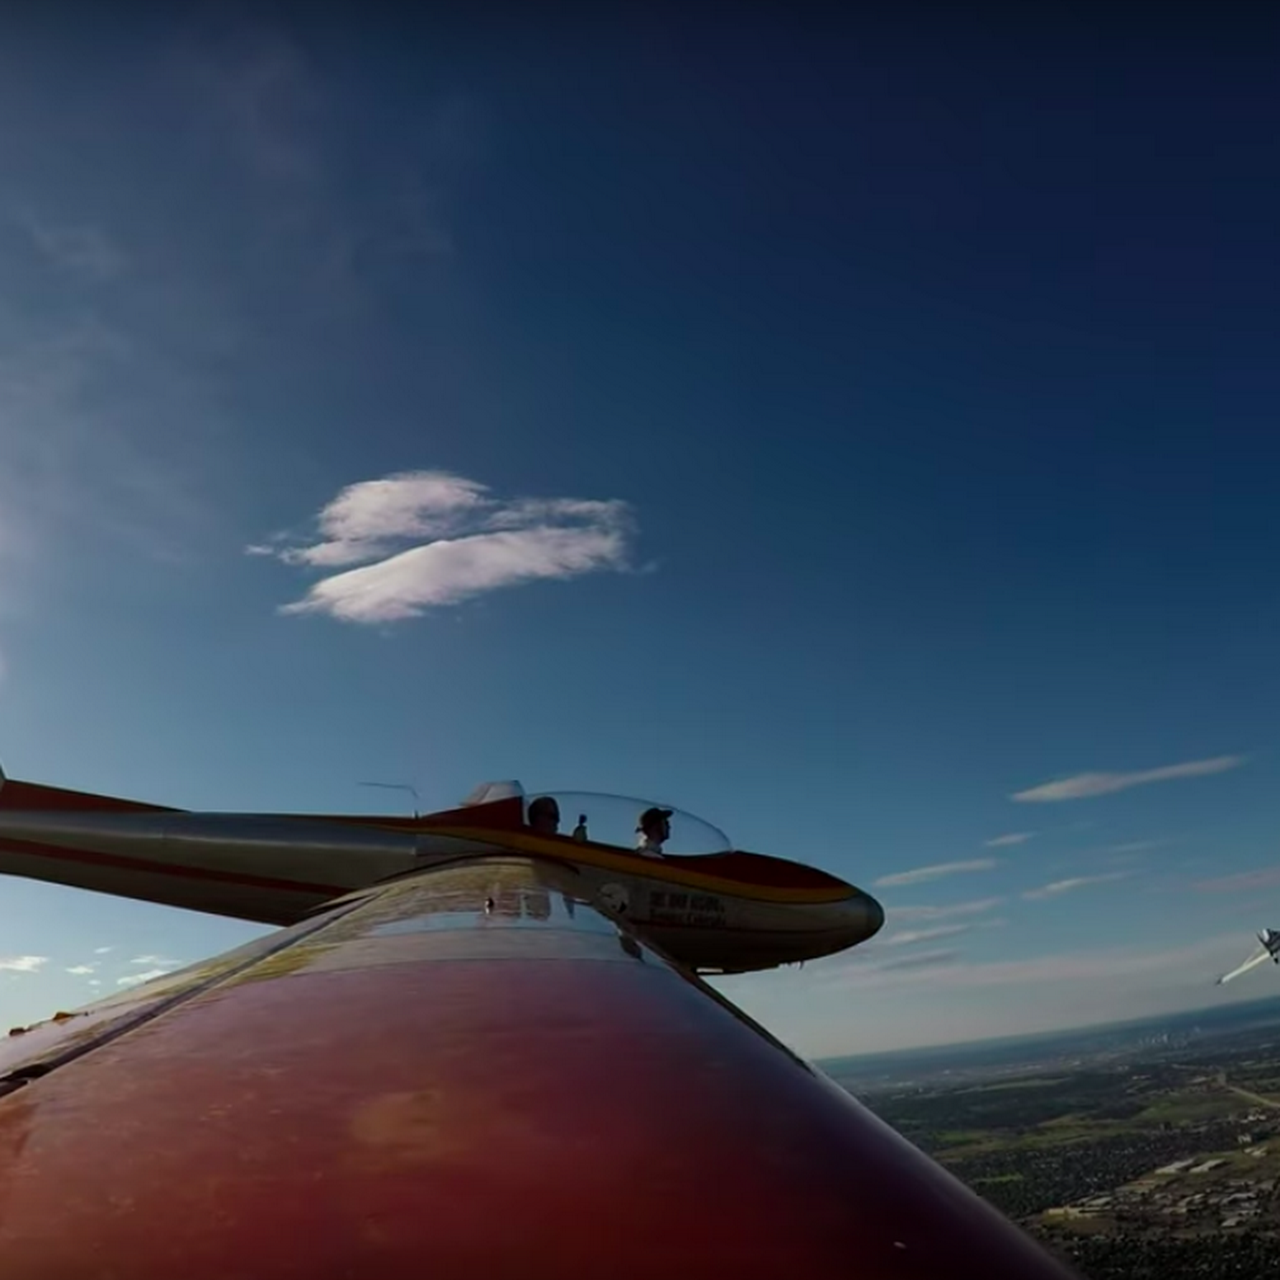 Mile High Gliding - Sailplane touring rides, rentals, and flight